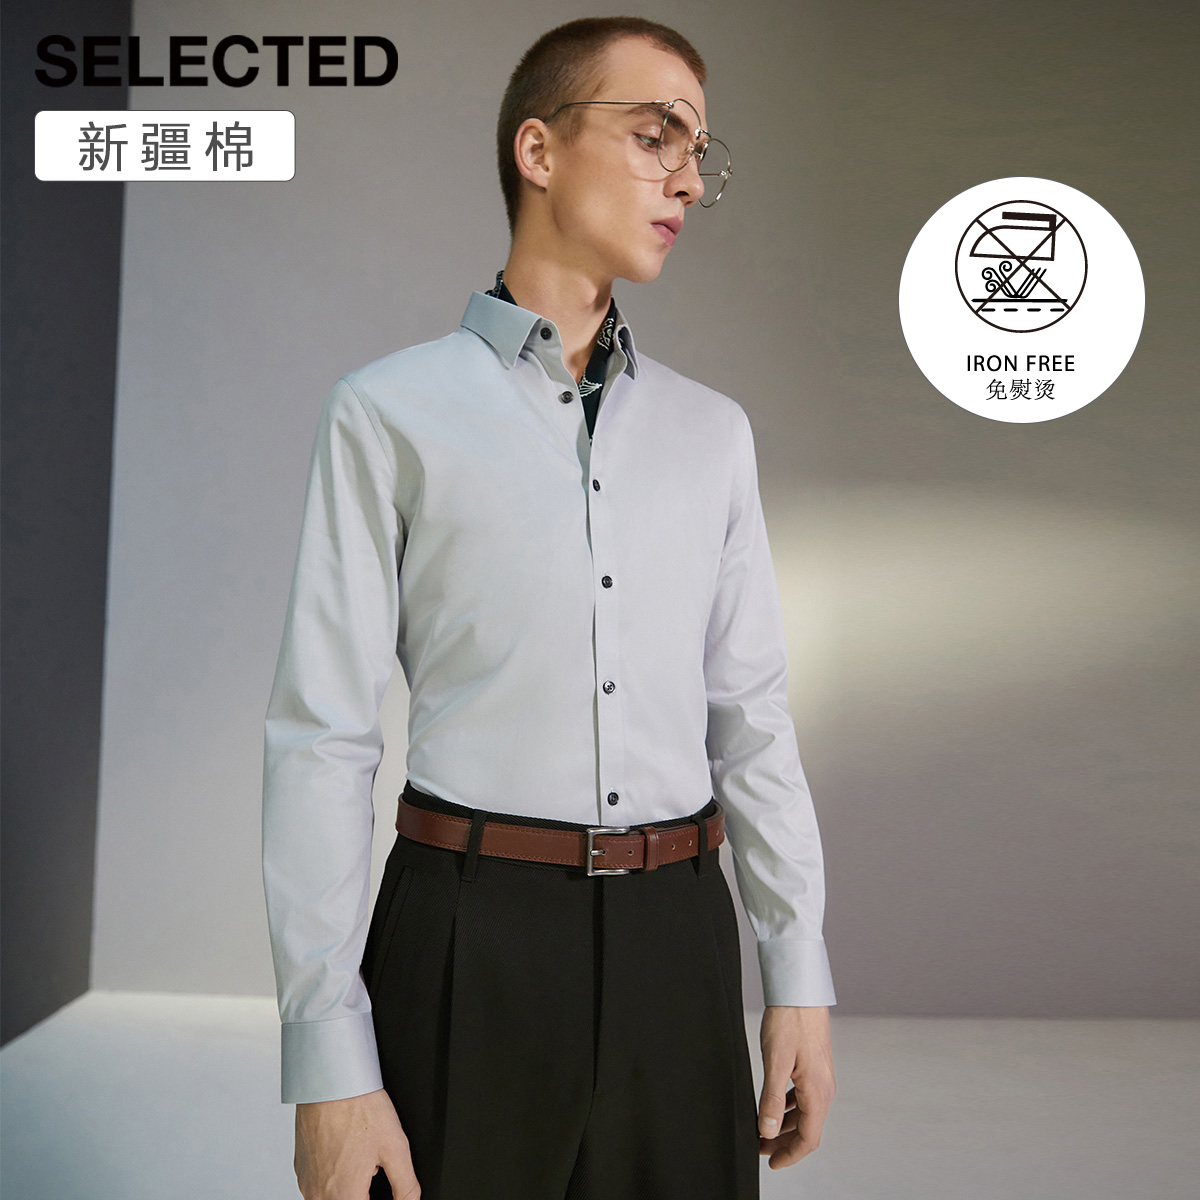 (Xinjiang cotton) SELECTED Slade men's non-ironing slim business long-sleeved shirt T)419305547